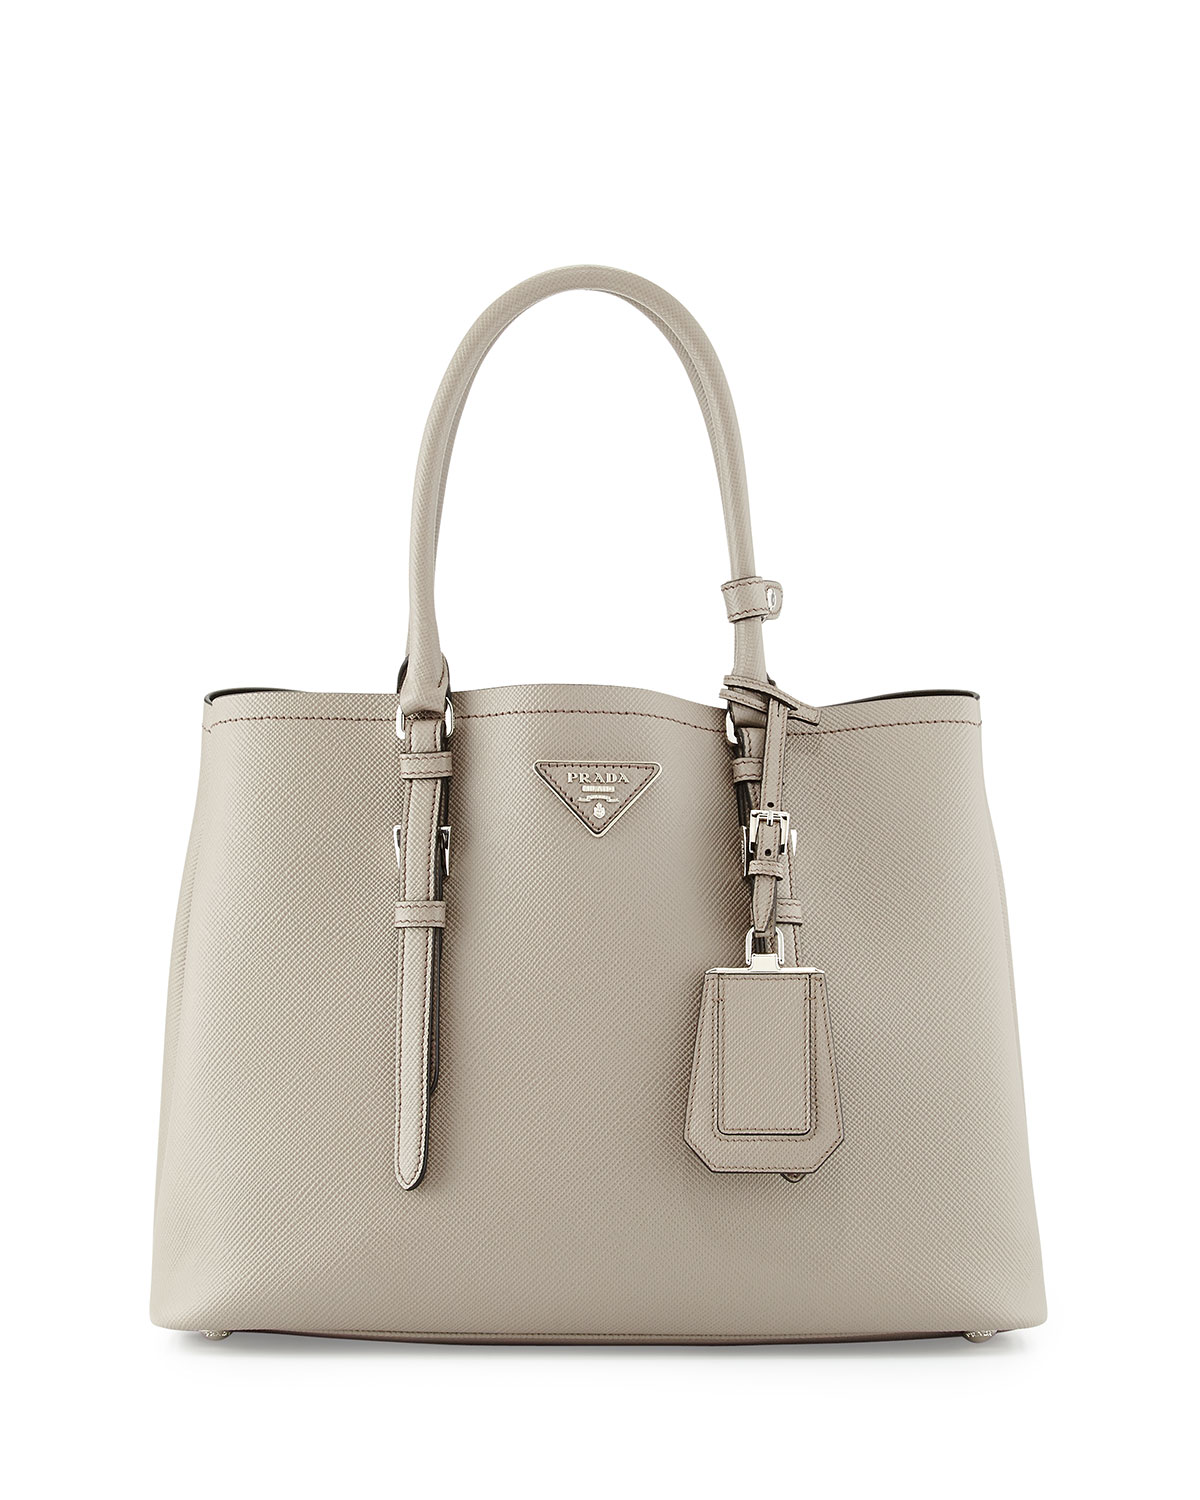 632f749a86e1 Prada Saffiano Cuir Covered-Strap Double Bag, Light Gray (Argilla ...